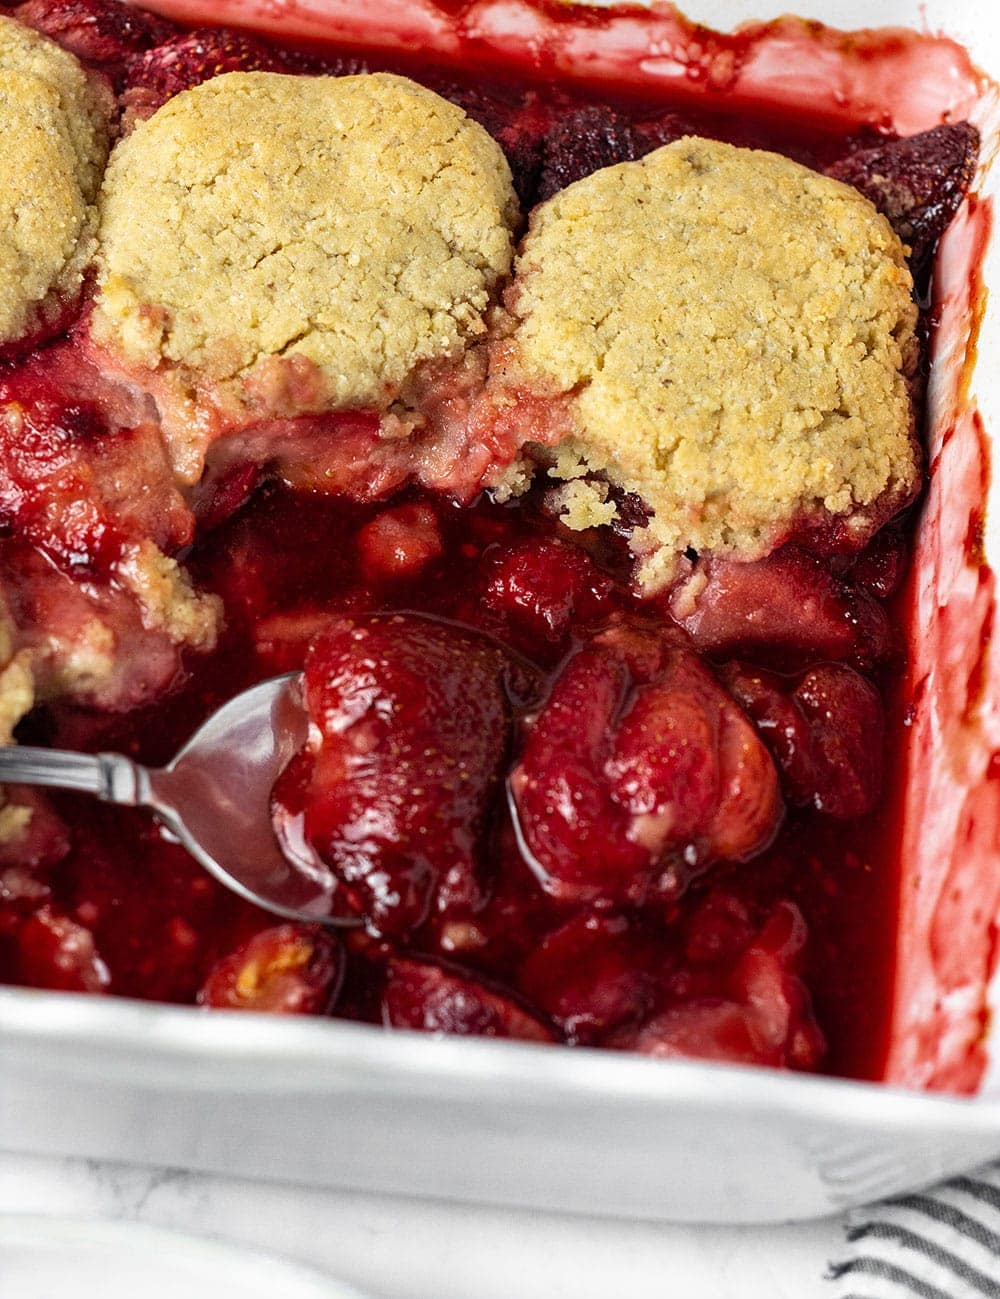 Close up view of strawberry cobbler being served with a spoon